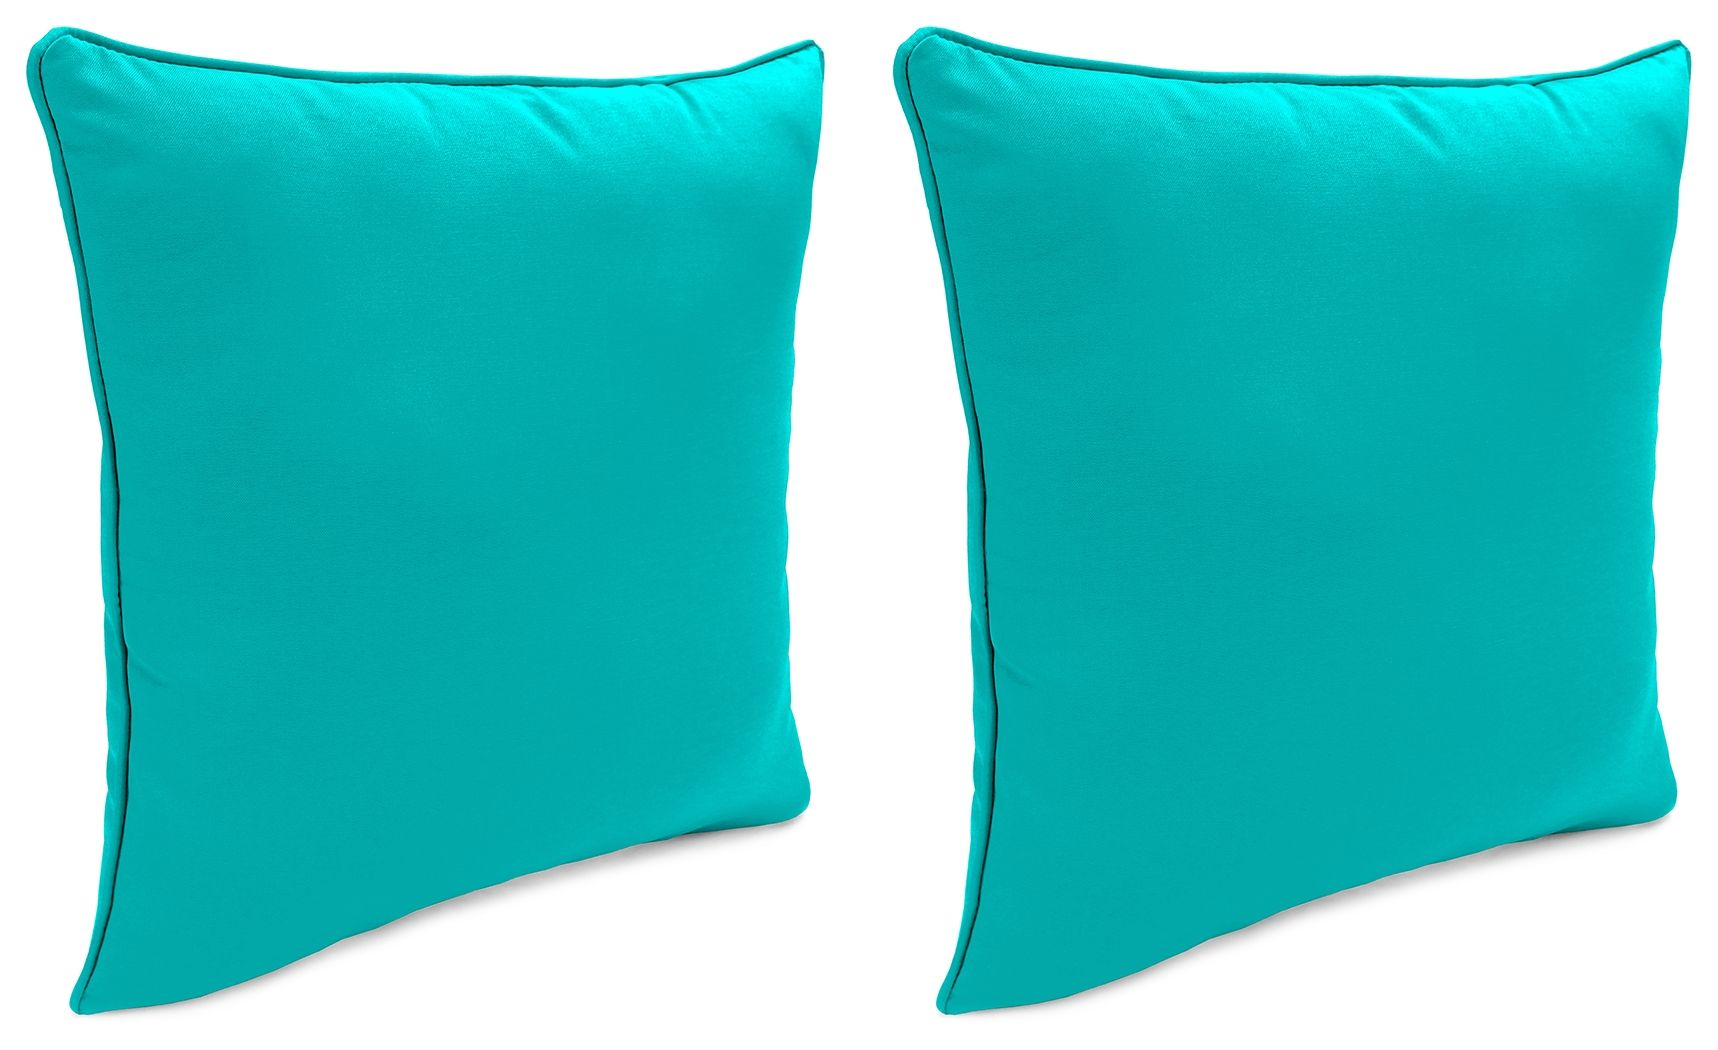 Green Turquoise Teal Throw Pillow